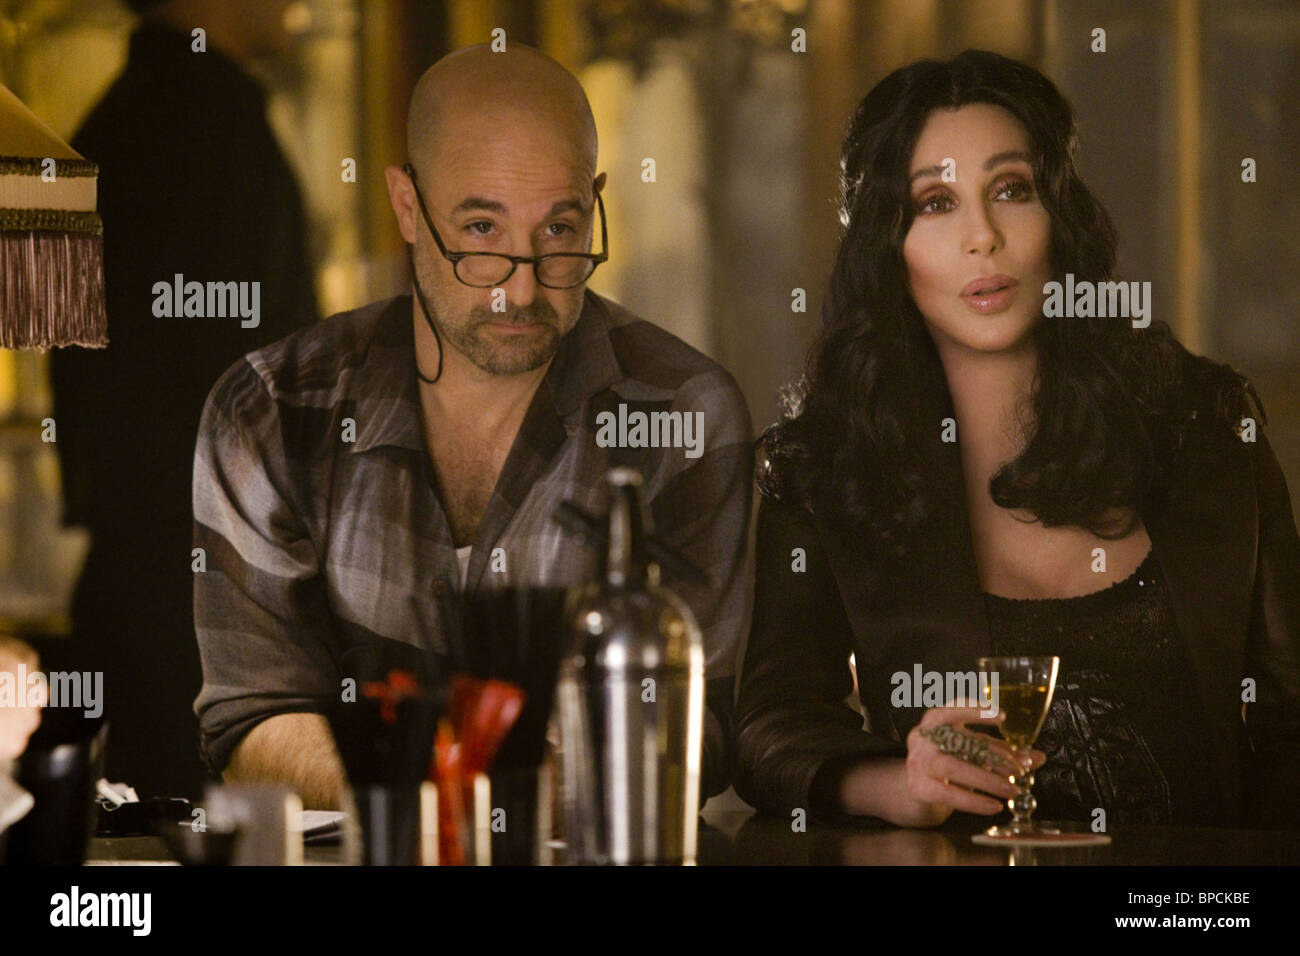 BURLESQUE (2010) CHER, STANLEY TUCCI STEVEN ANTIN (DIR) 001 MOVIESTORE COLLECTION LTD - Stock Image